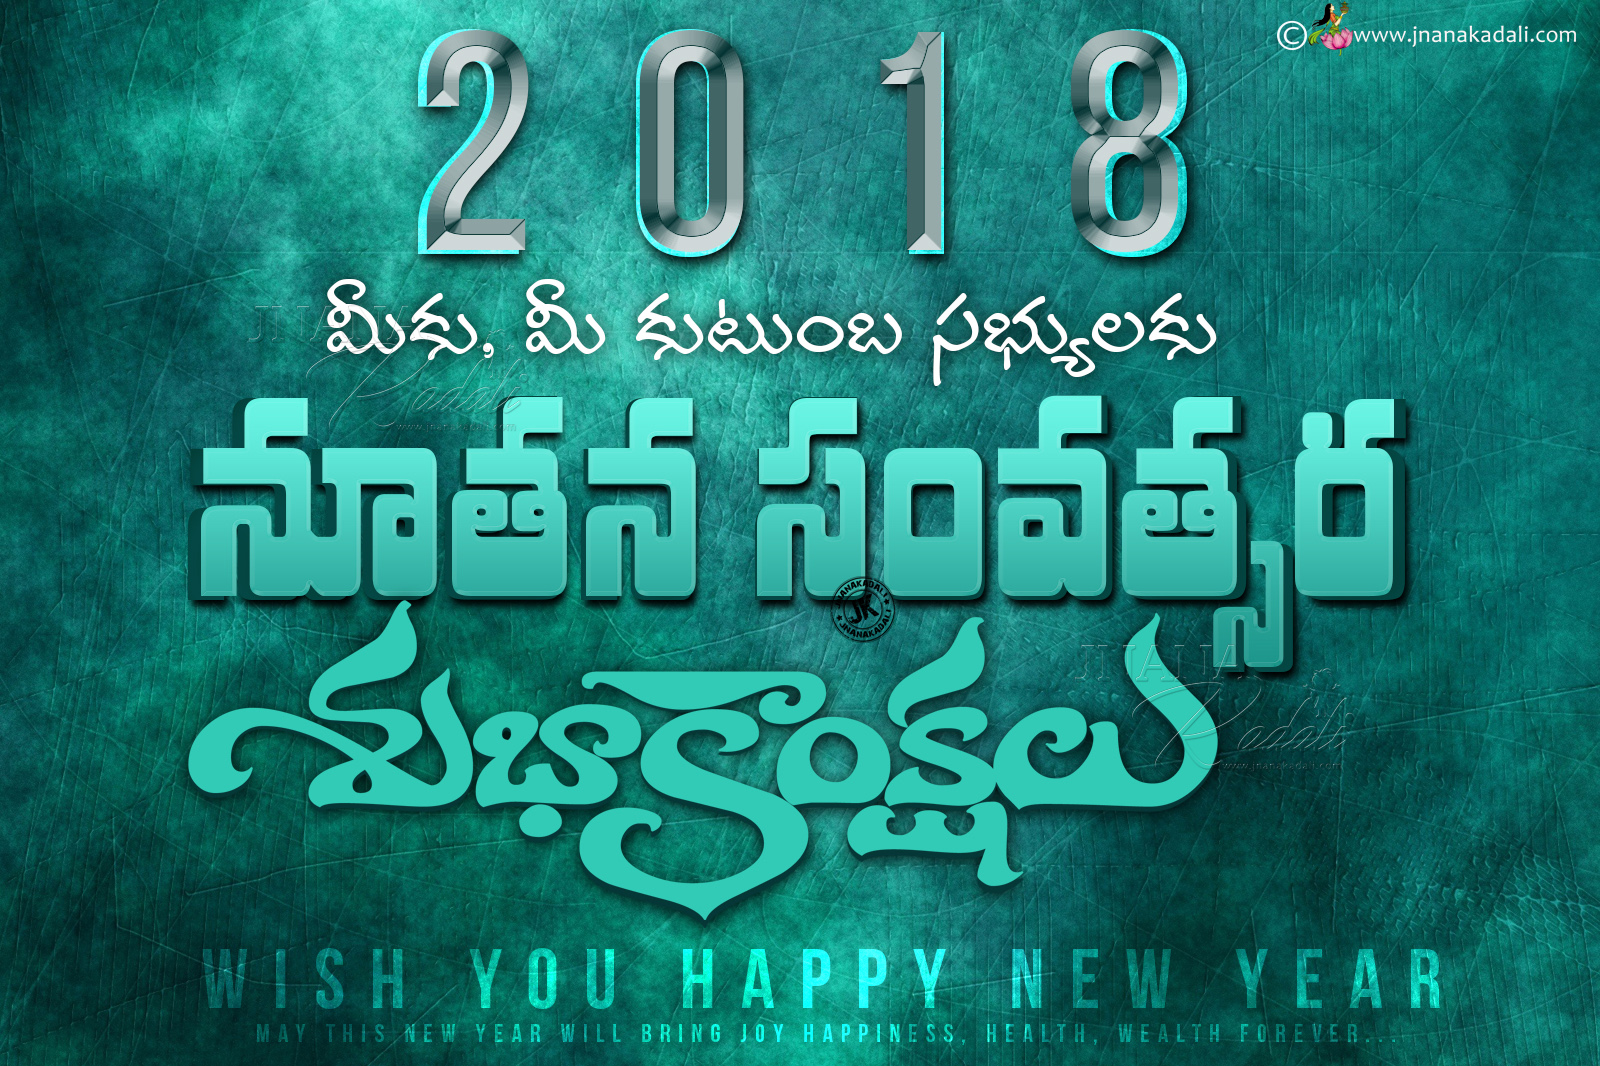 2018 latest trending happy new year greetings with hd wallpapers in greetings happy new year greetings quotes in telugu happy new year hd wallpapers in kristyandbryce Image collections